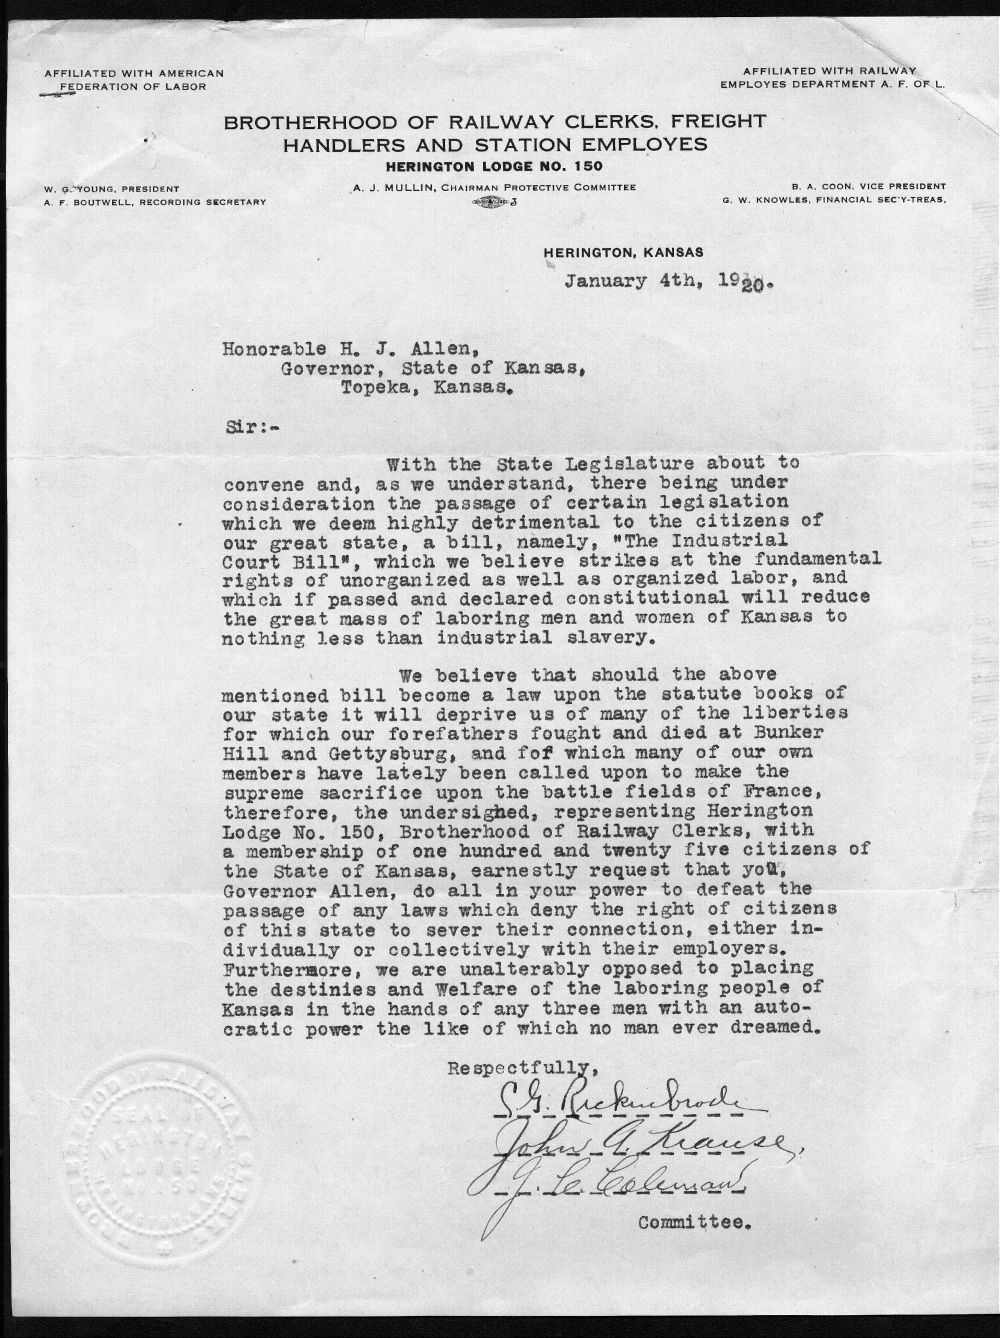 Letter to Governor Henry Allen from the Brotherhood of Railway Clerks, Freight Handlers and Station Employees